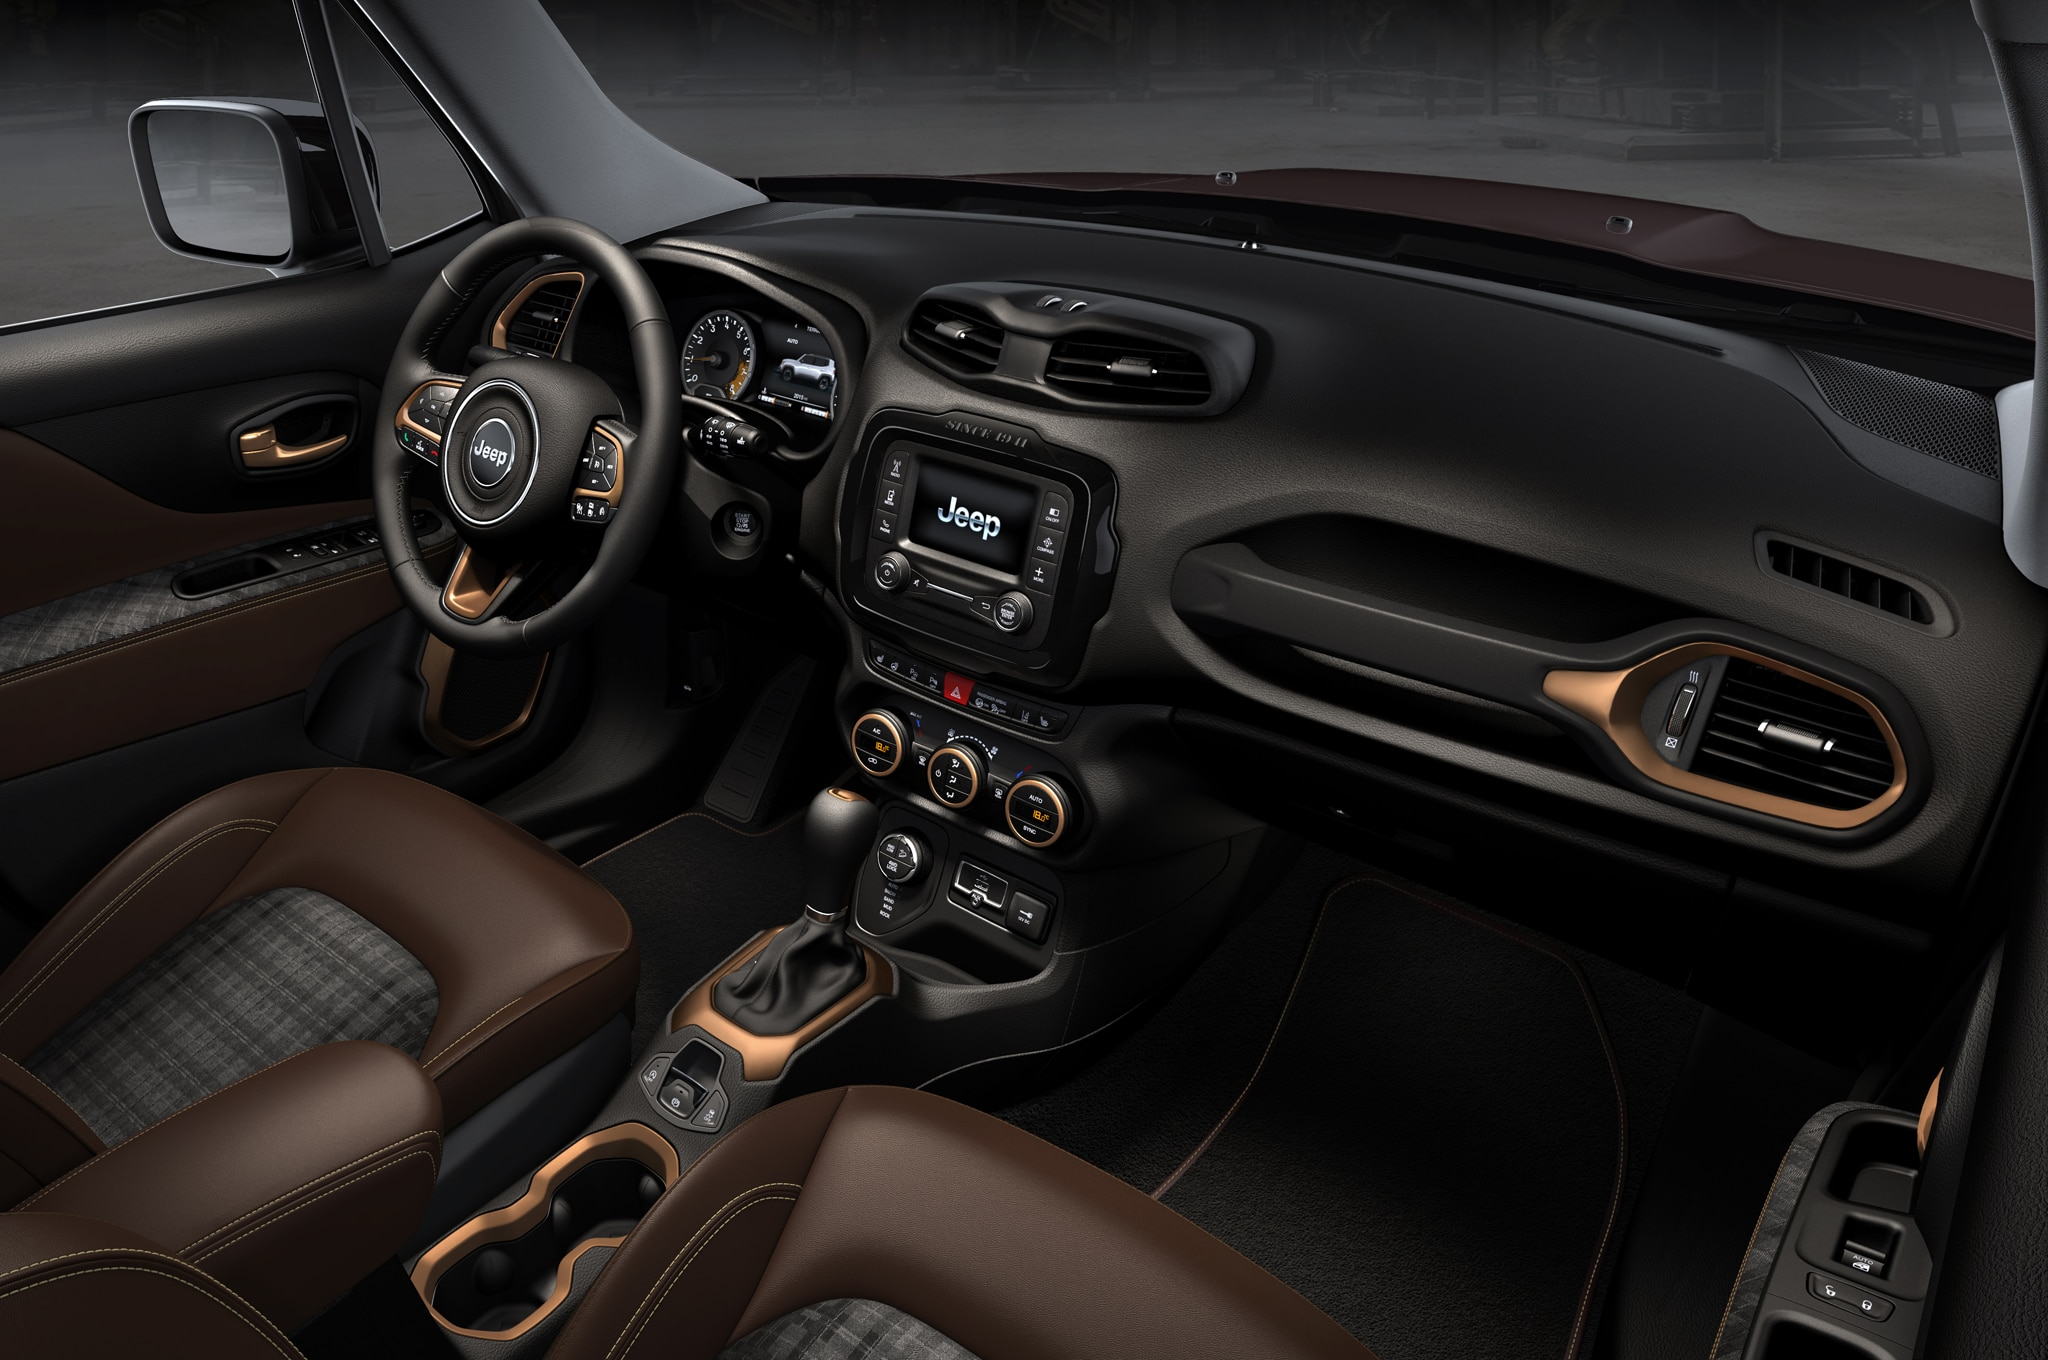 jeep 2015 renegade interior. on the jeep 2015 renegade interior